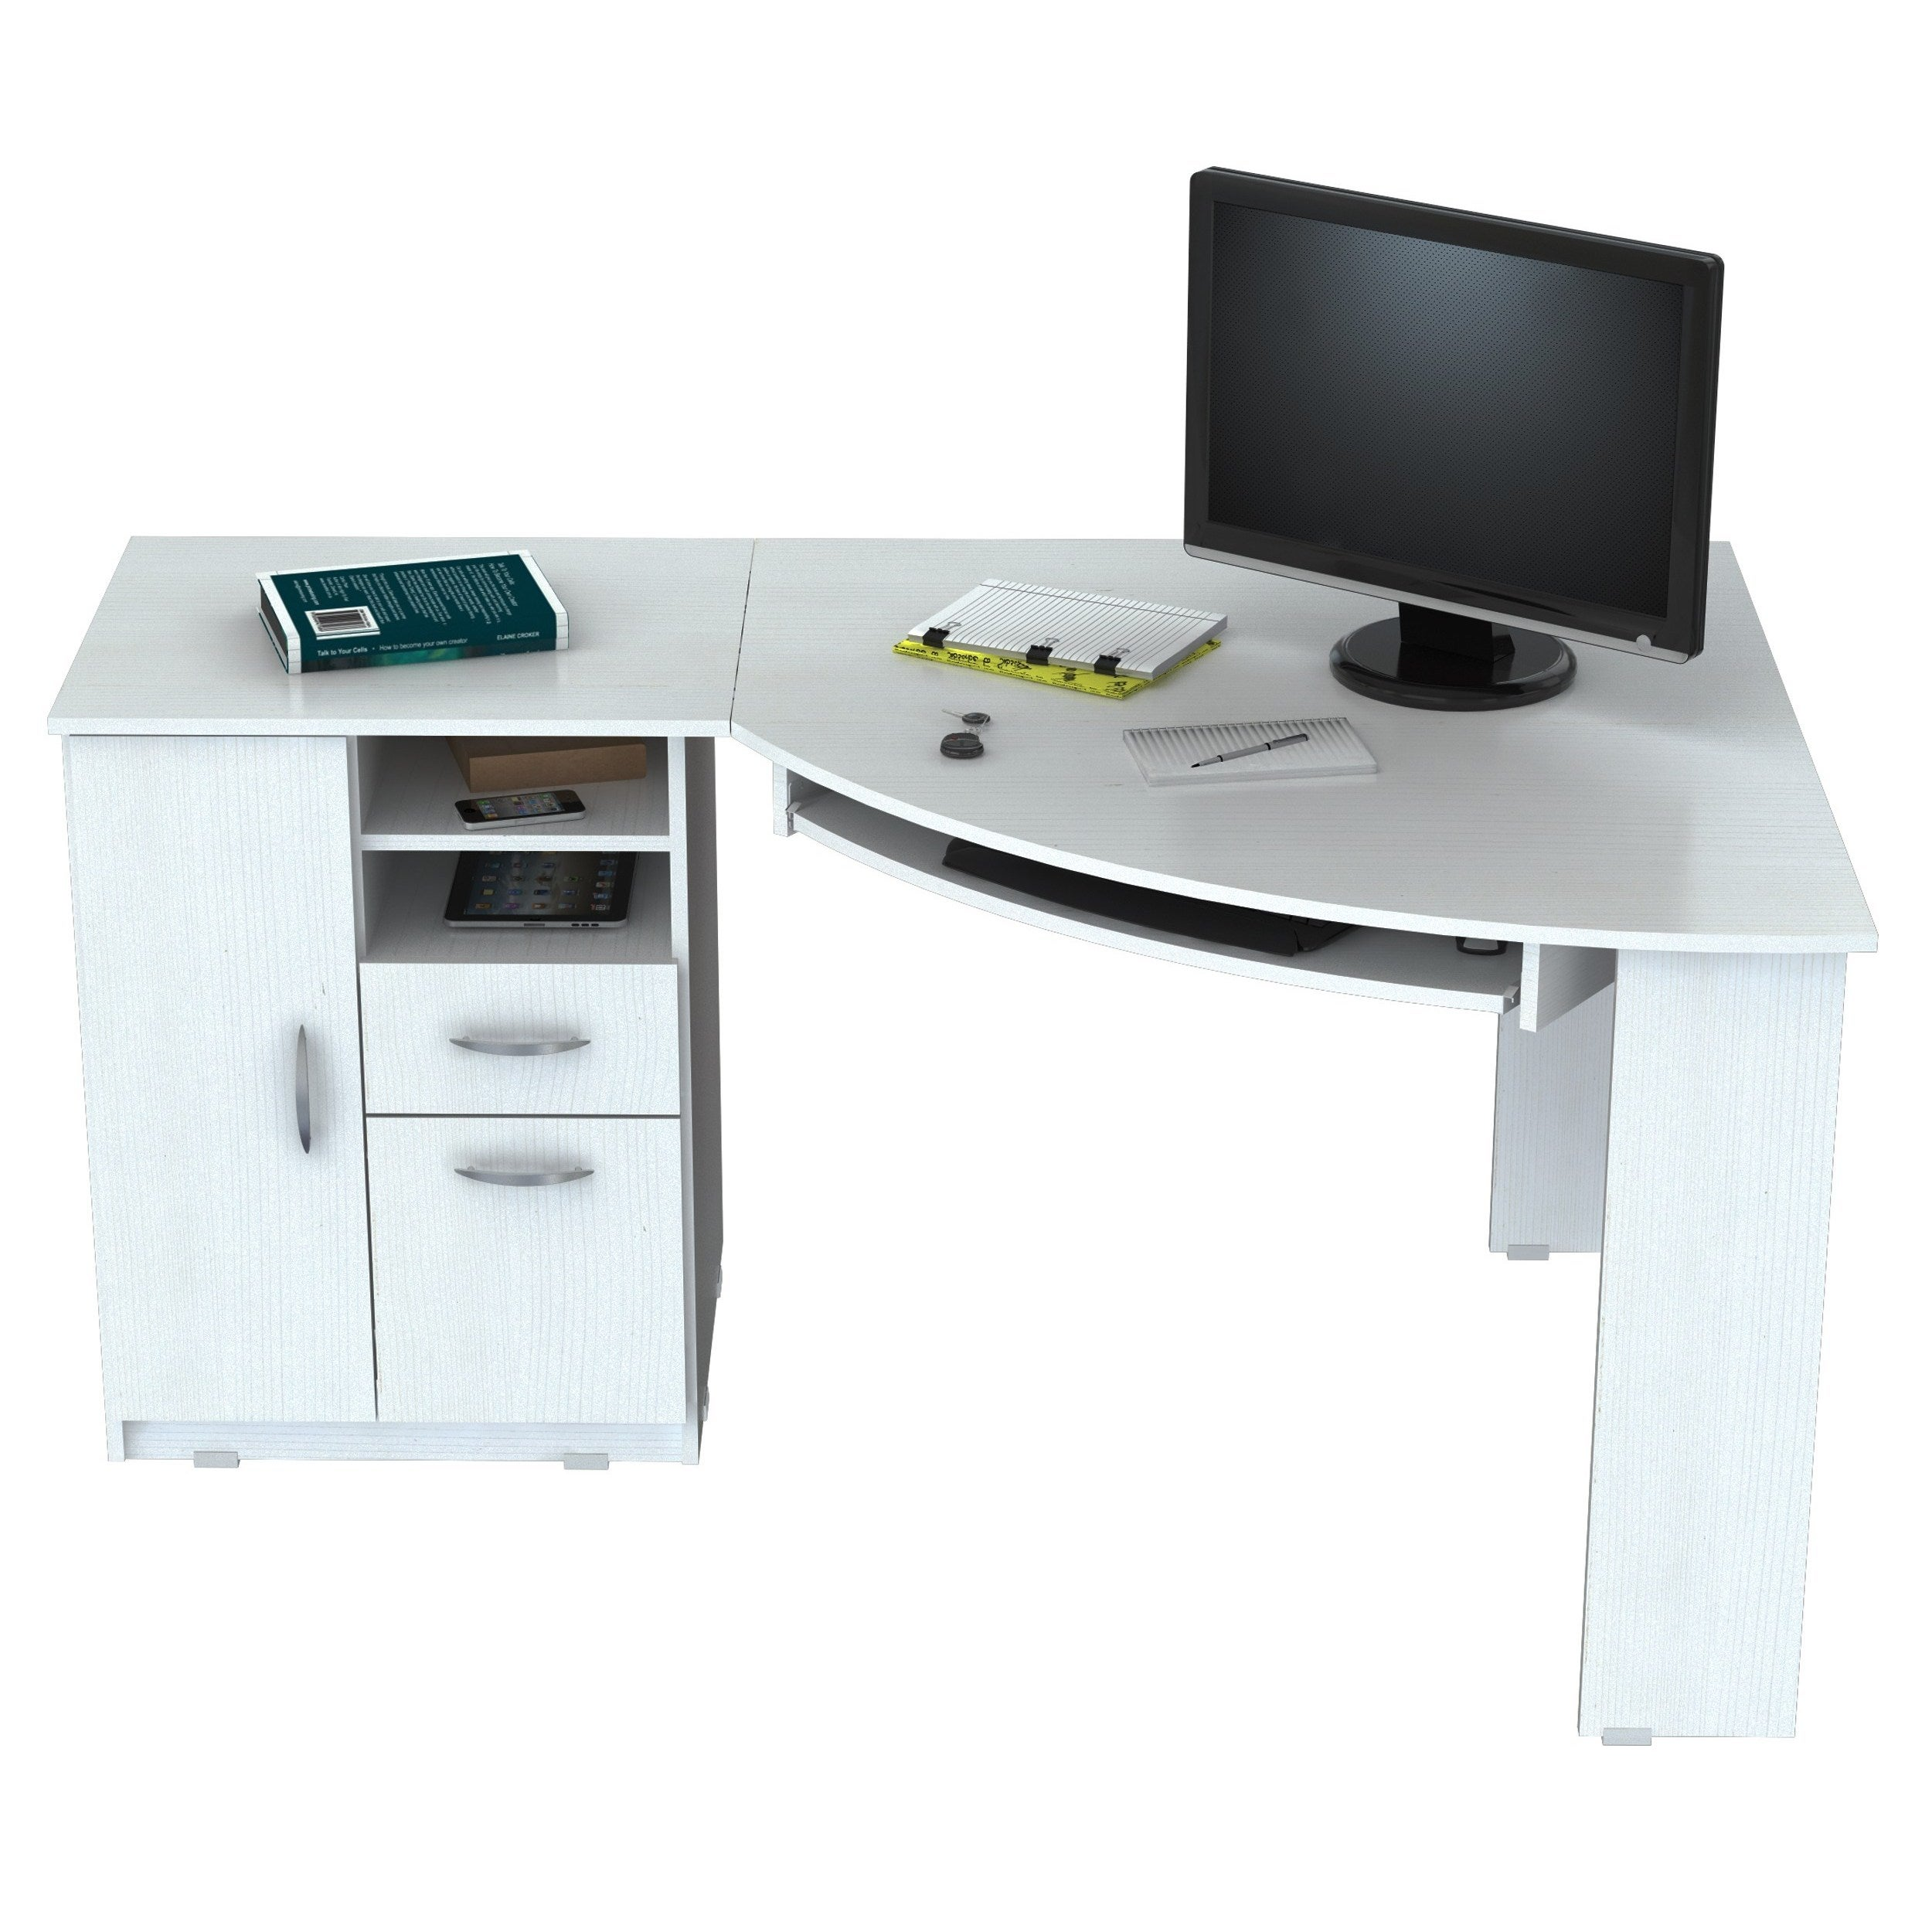 word 39office desks workstations39and. Inval Laricina White Corner Desk - Free Shipping Today Overstock 17740651 Word 39office Desks Workstations39and